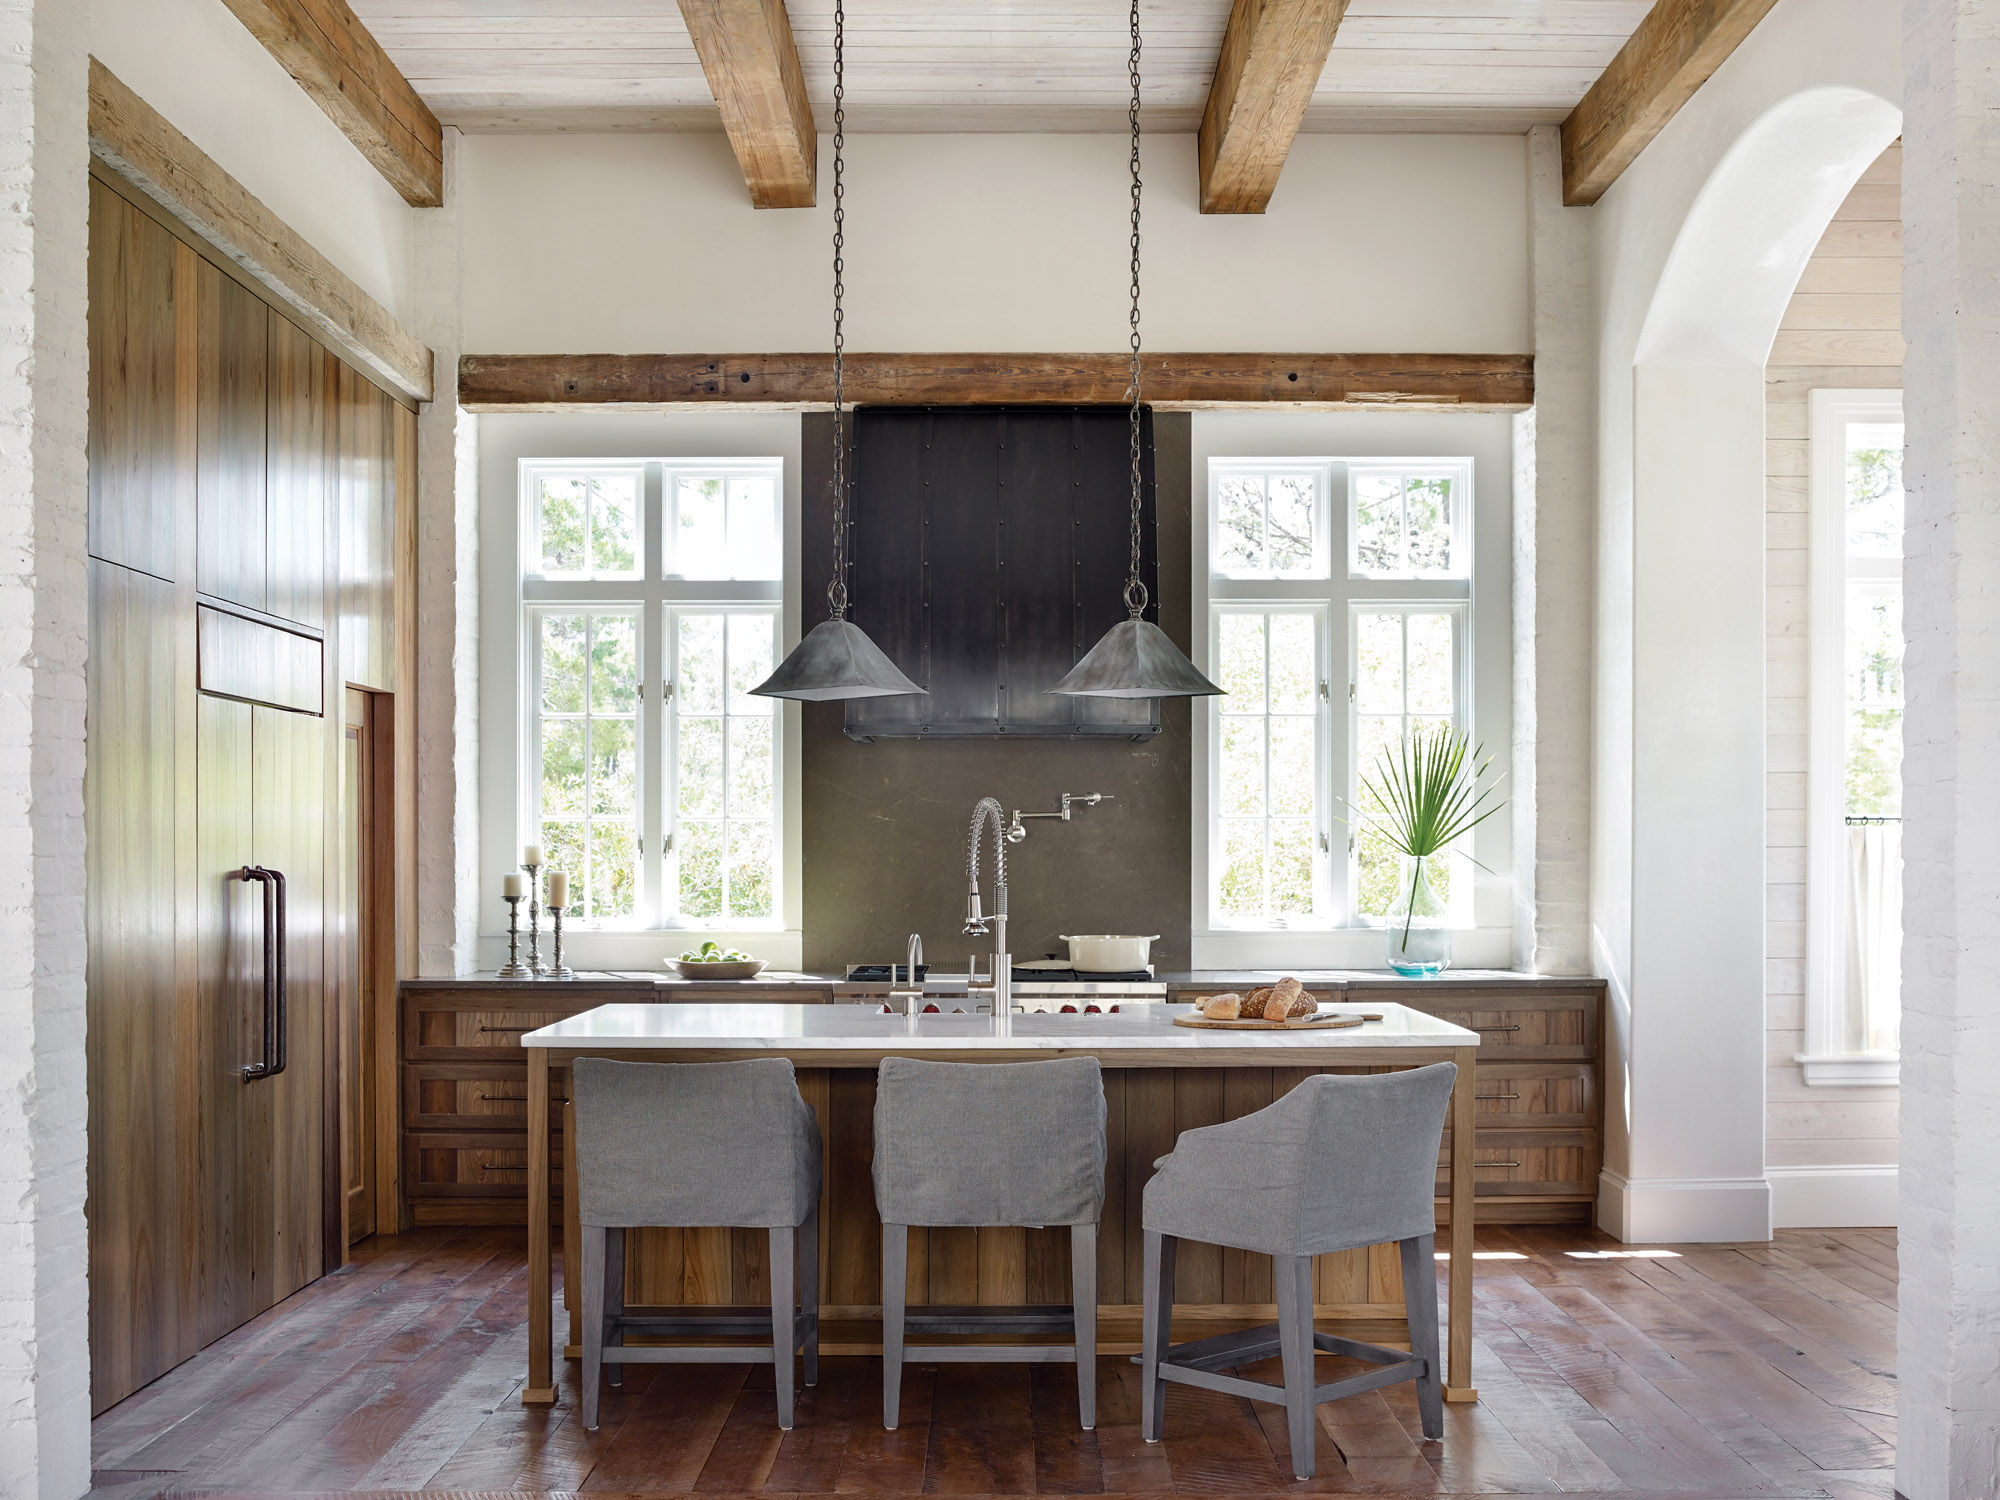 The  kitchen's beams and cabinets are made from reclaimed cypress.